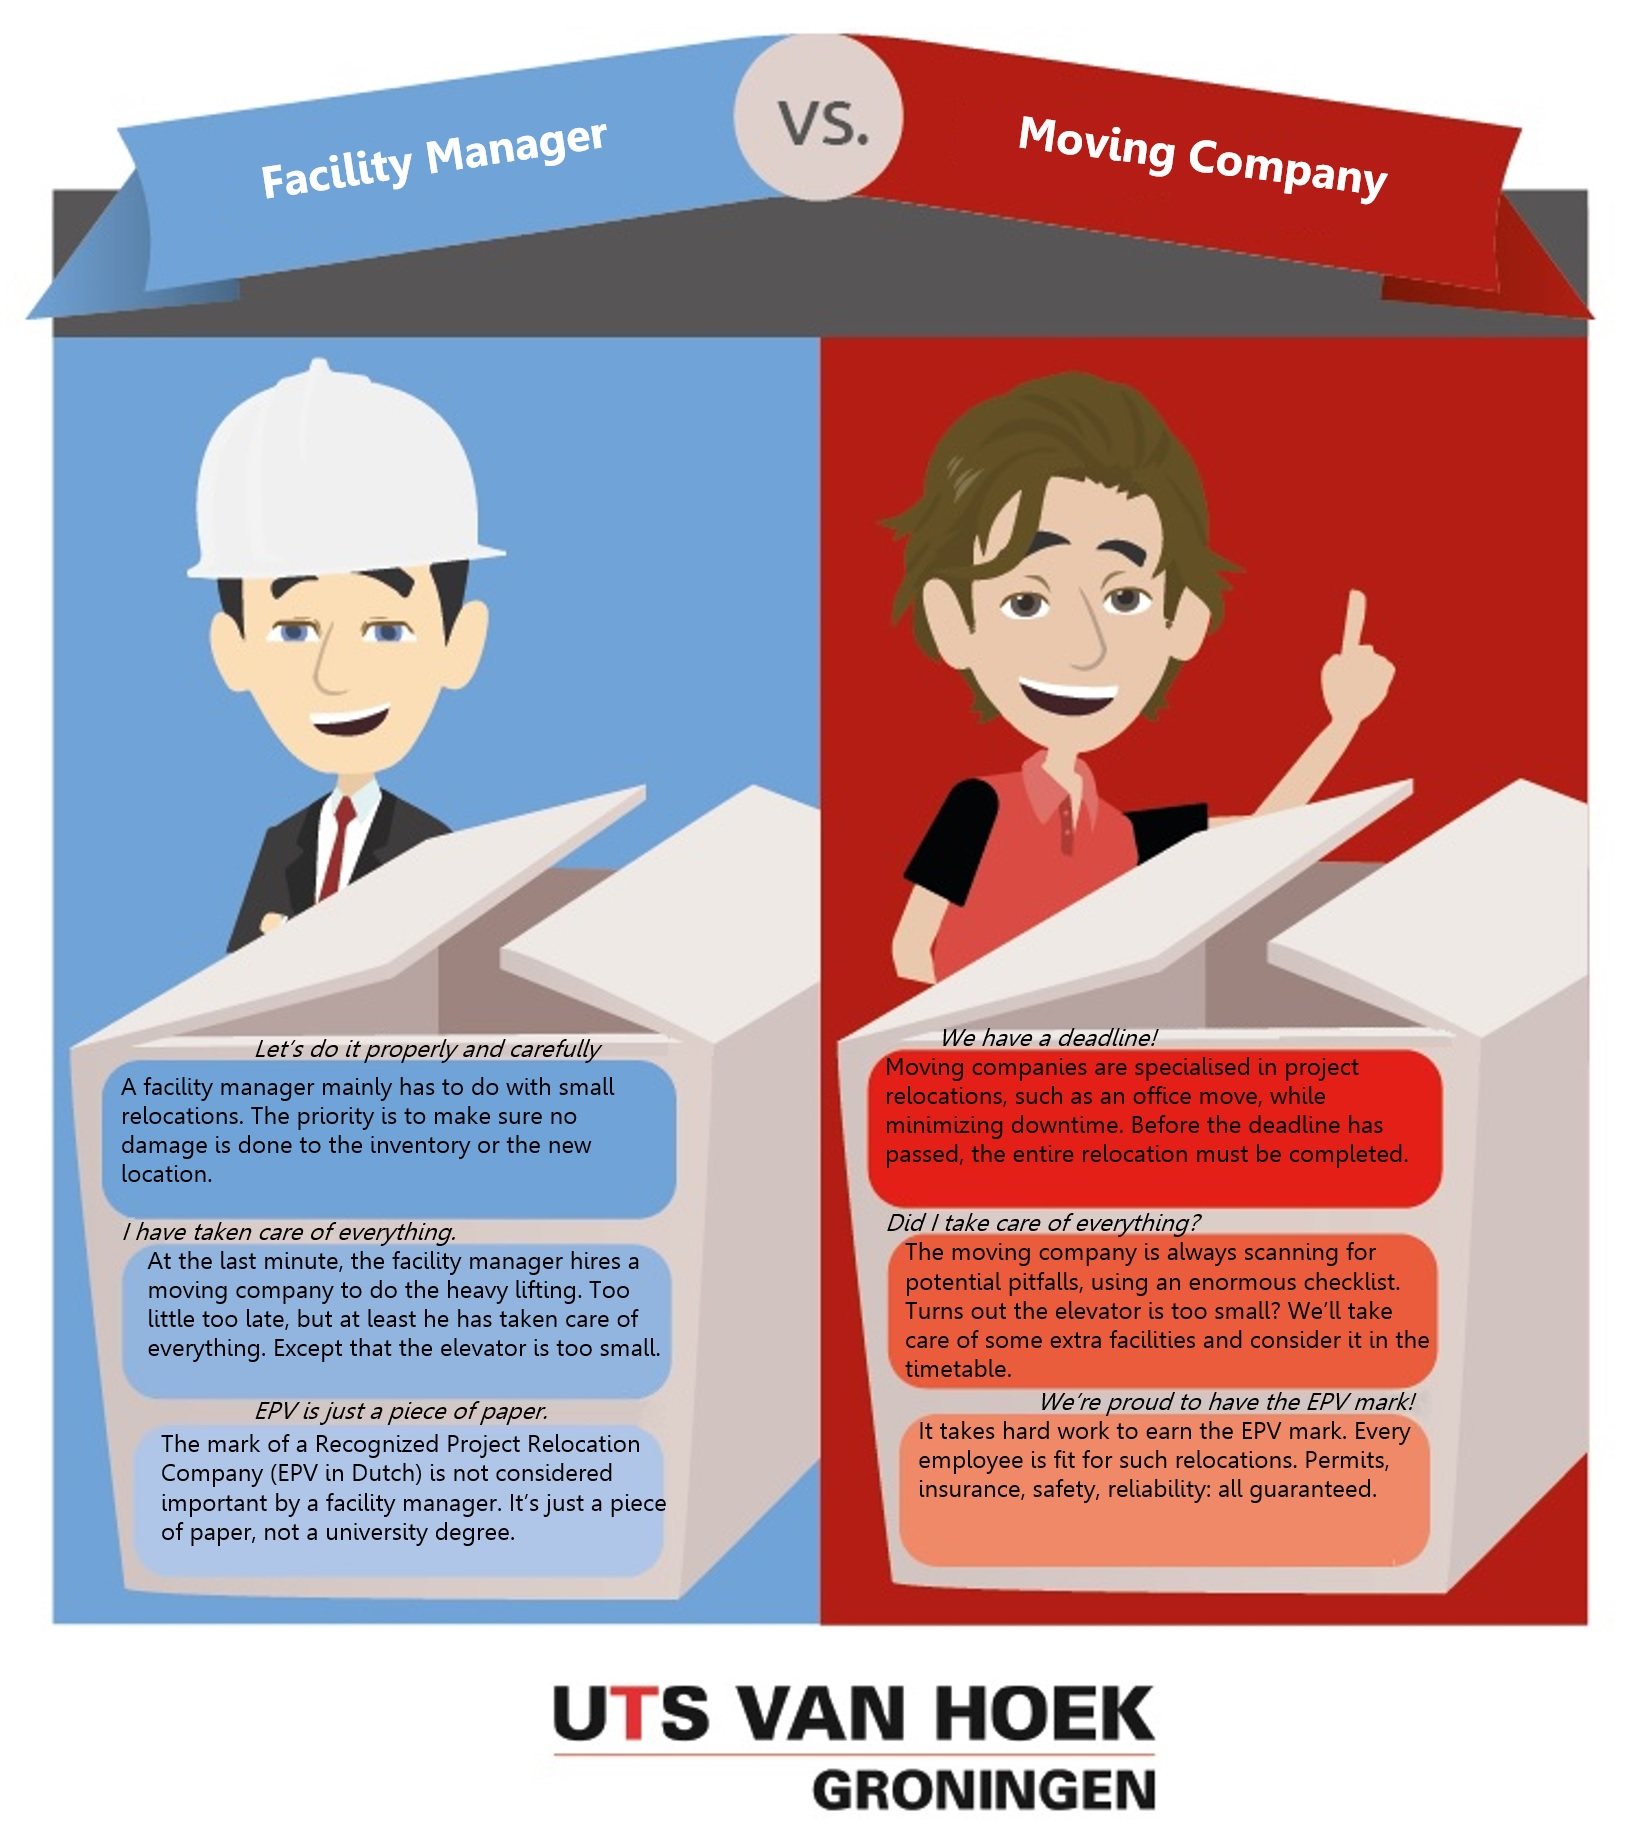 moving office facility manager moving company uts van hoek groningen